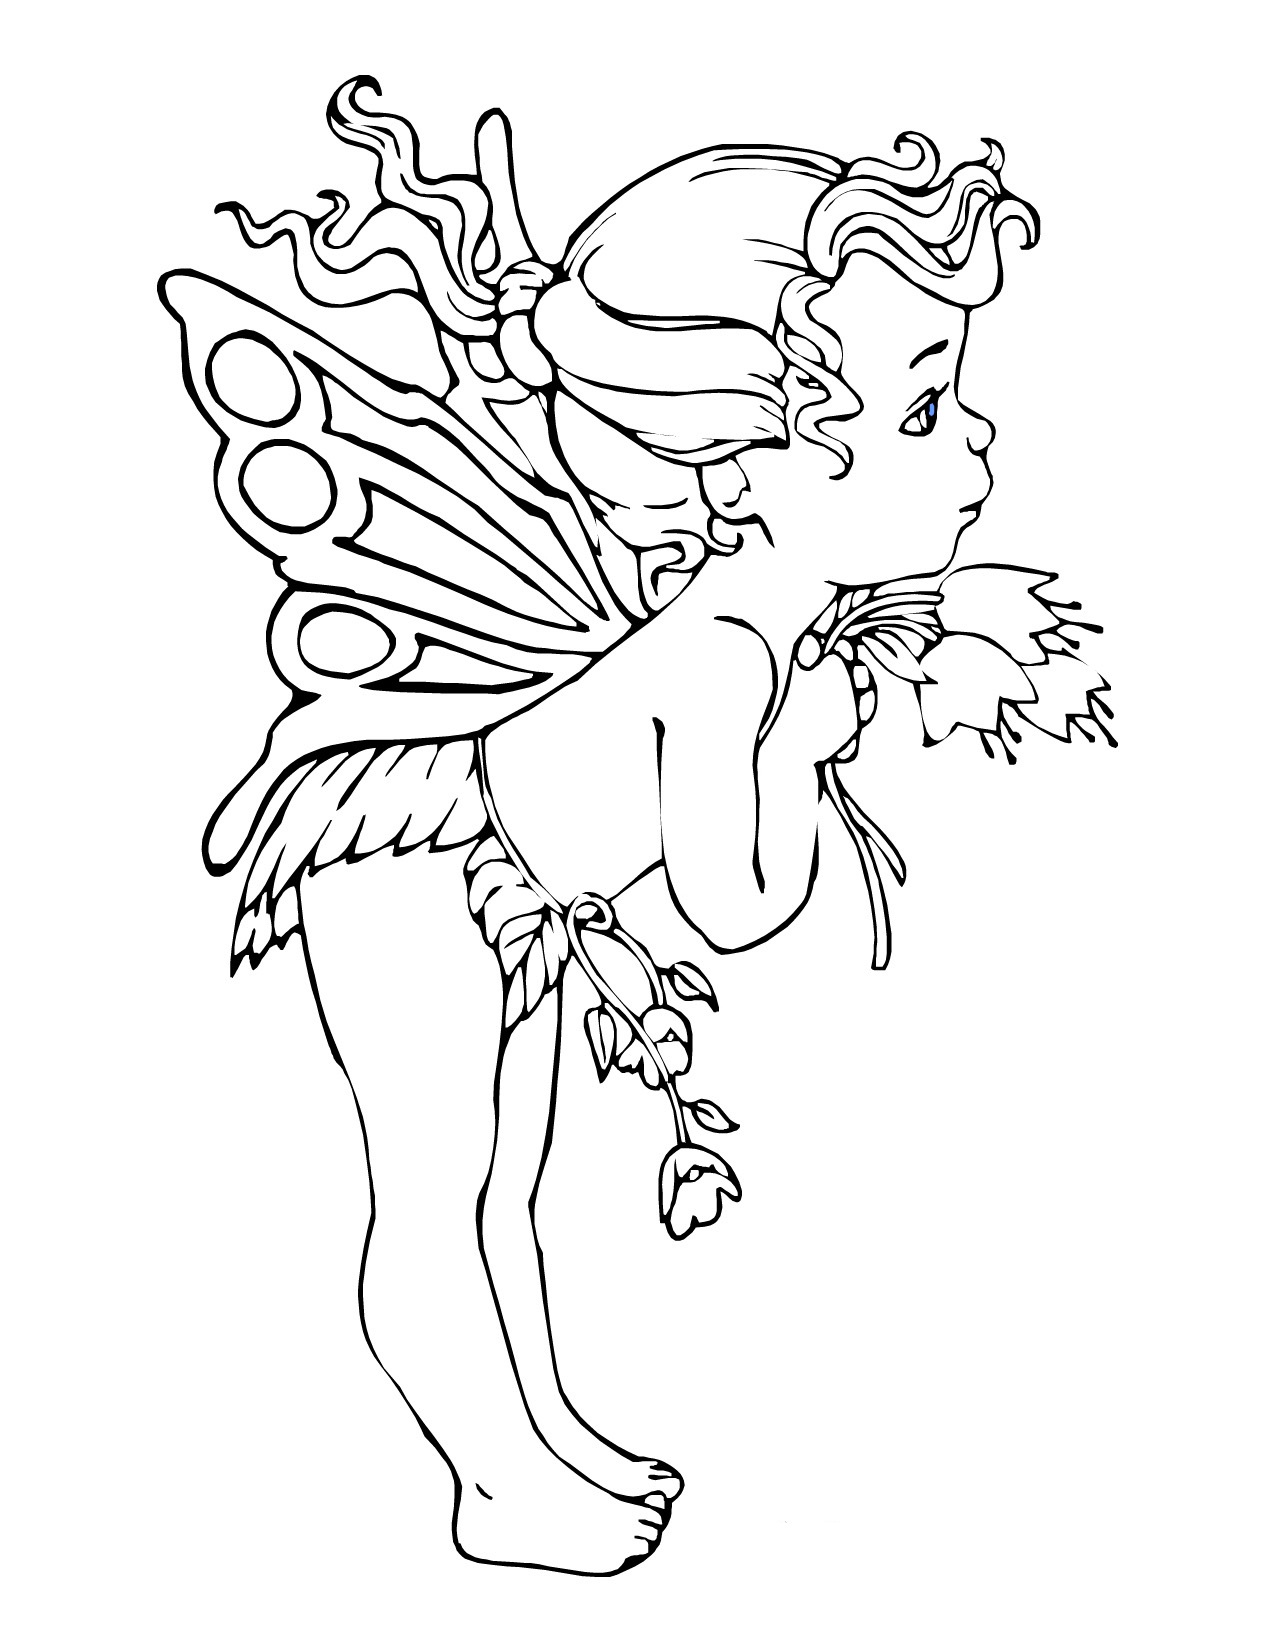 fairy coloring pages printable - Kids Free Printable Coloring Pages